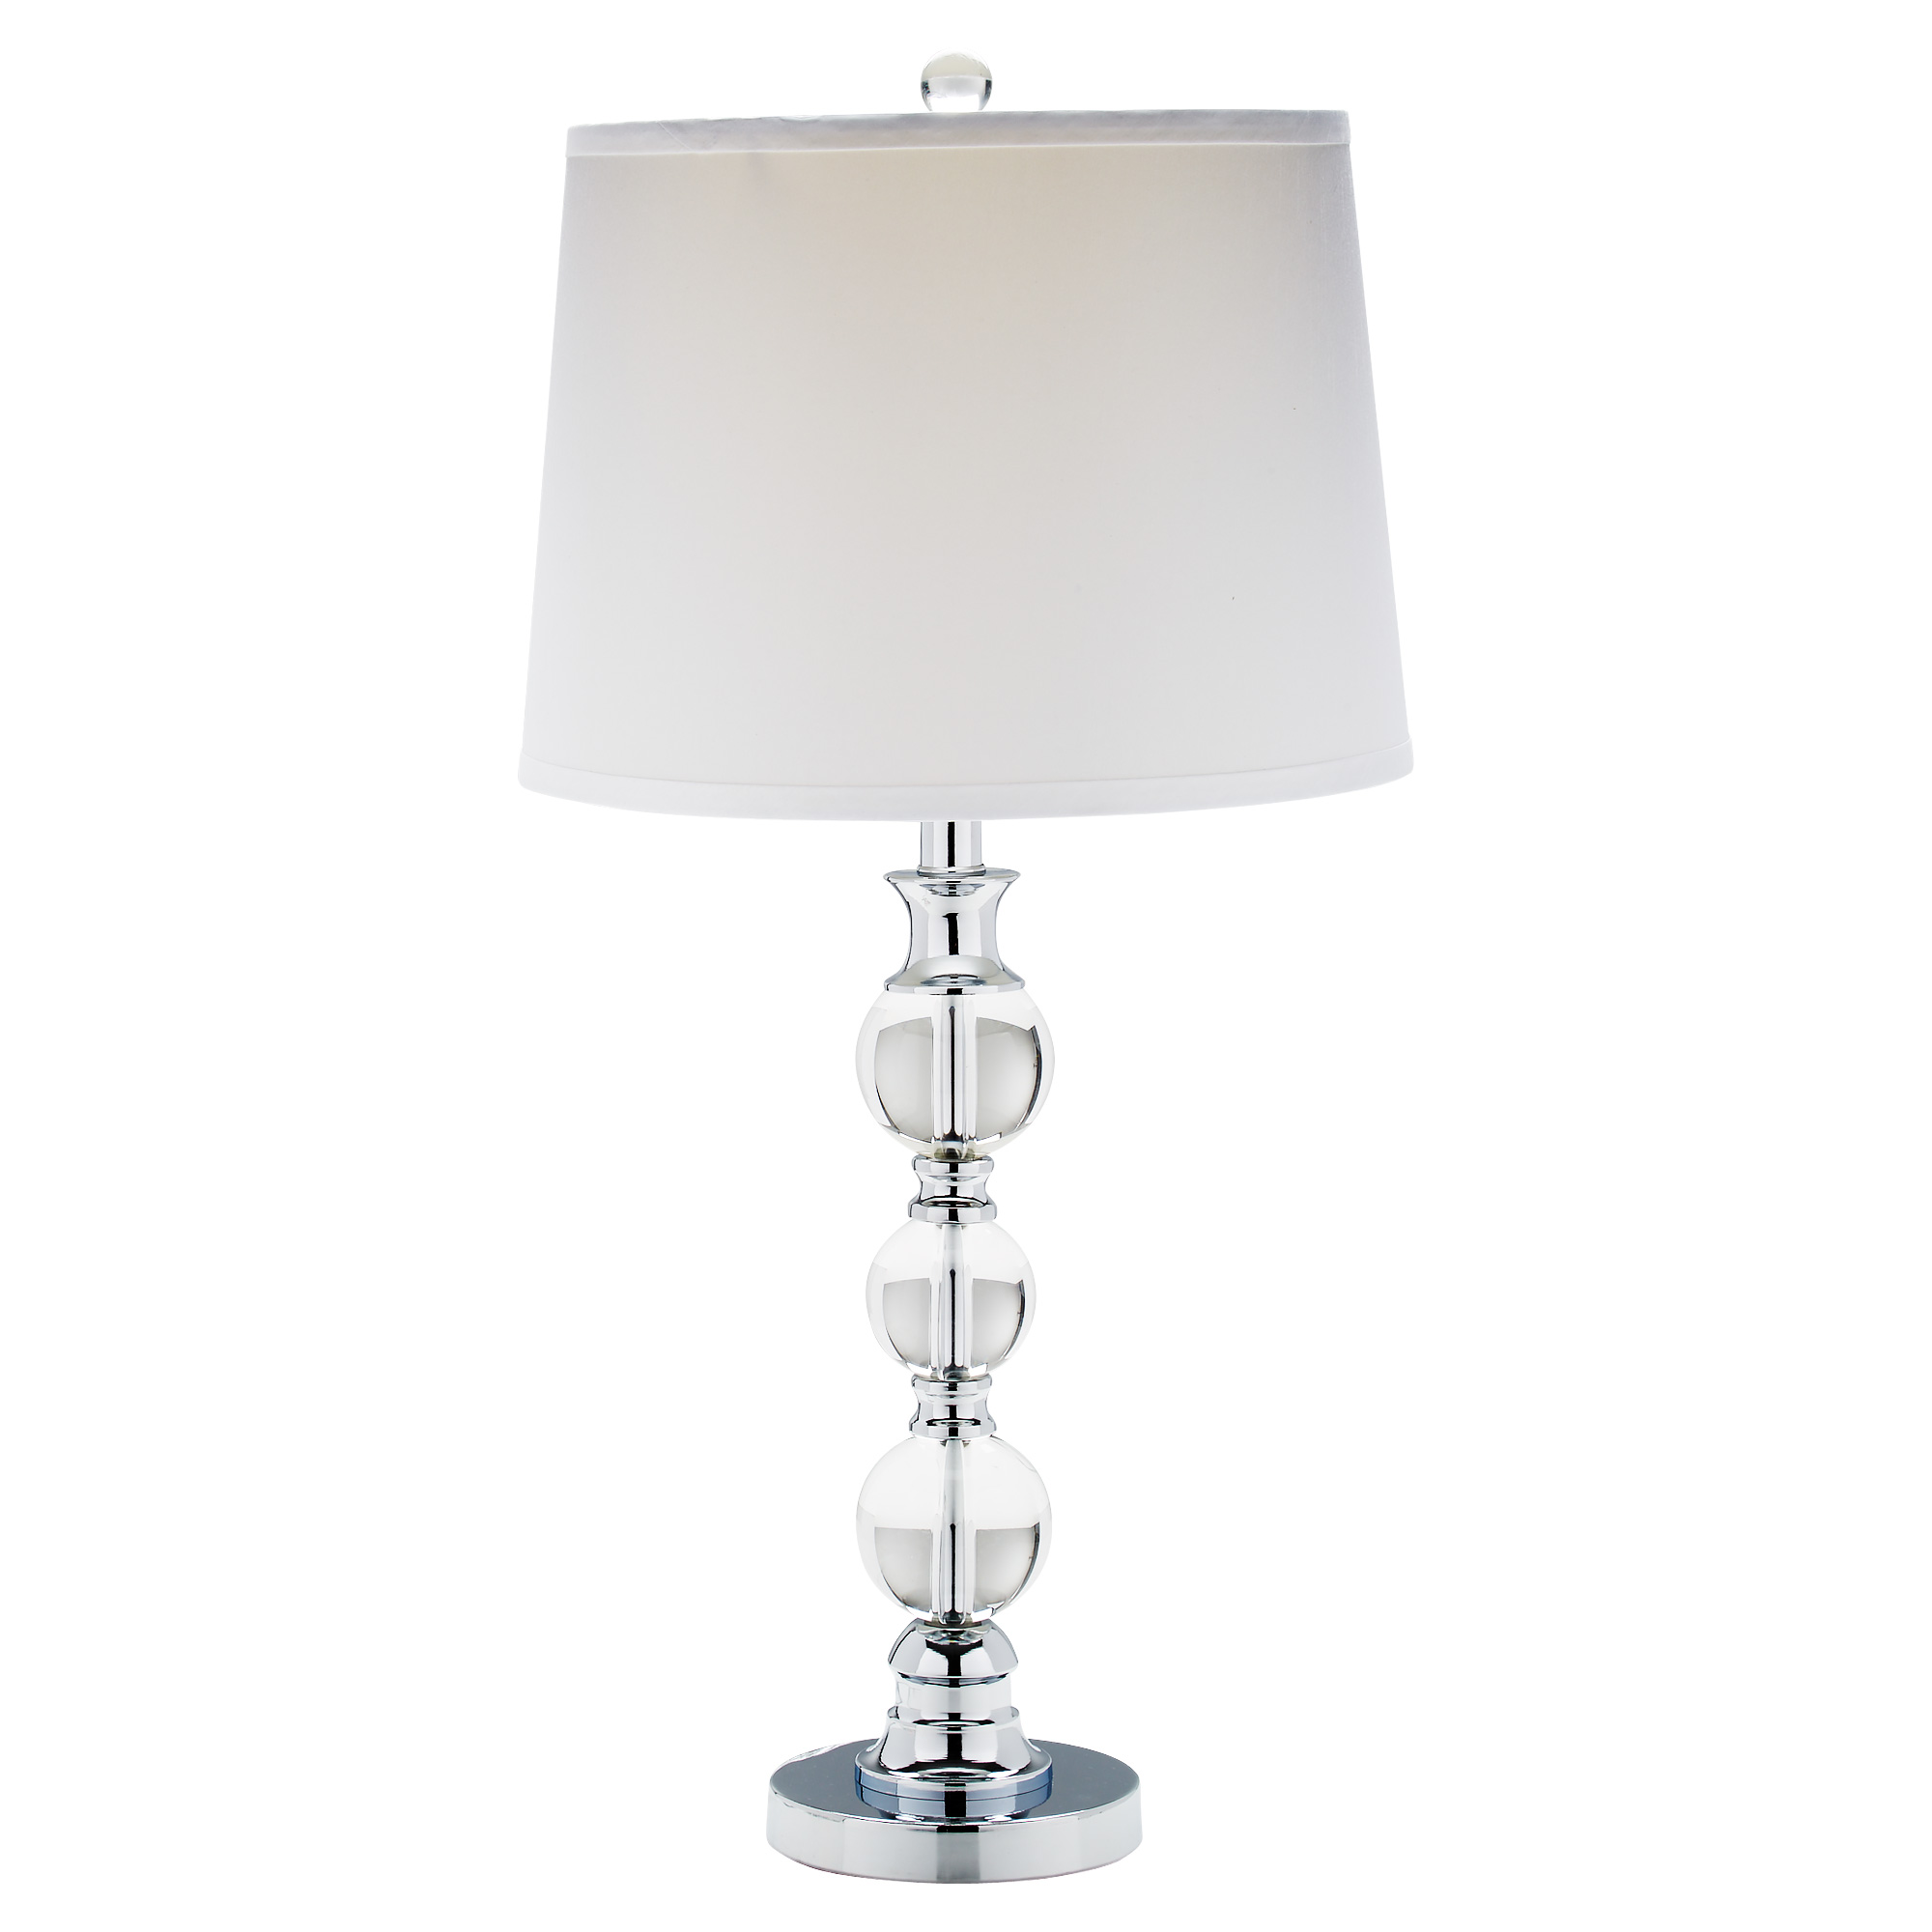 Get A Crystal Ball Table Lamp And Breathe Life Into Your